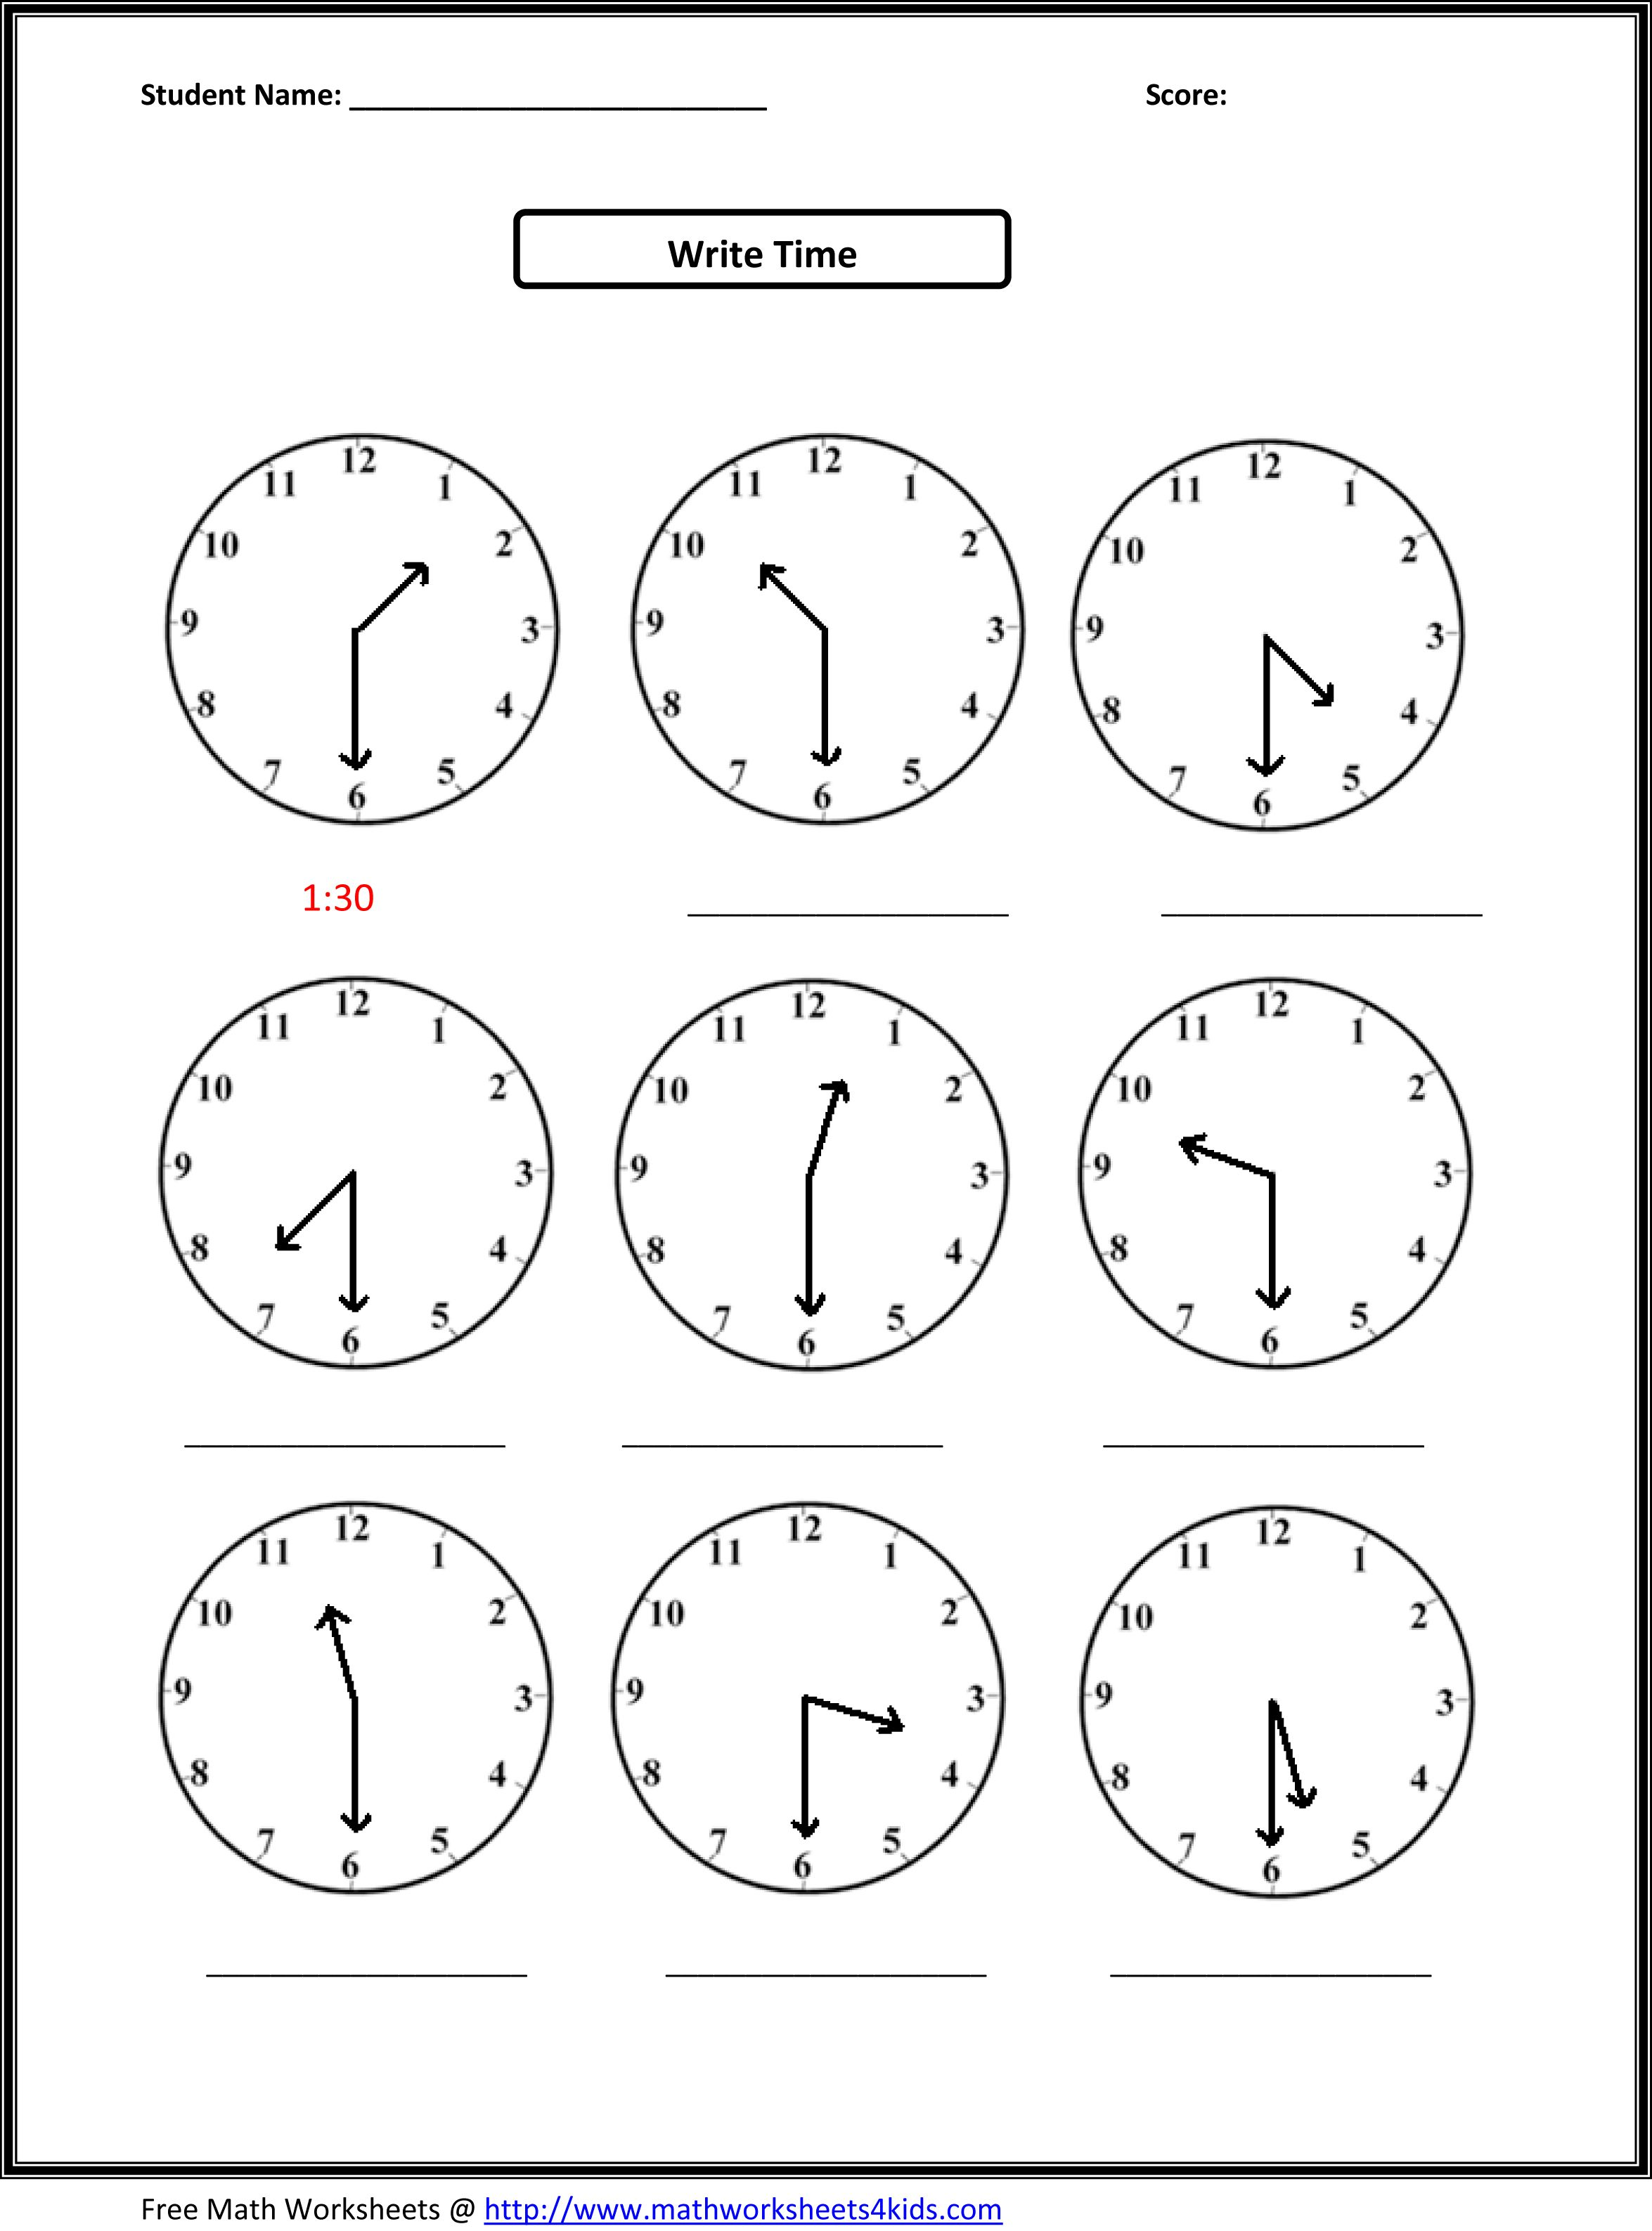 Weirdmailus  Terrific Worksheet On Time For Grade   Reocurent With Likable Free Printable Telling Time Worksheets Nd Grade  Reocurent With Agreeable Social Studies Worksheets For Kindergarten Also Inches To Feet Worksheet In Addition Acceleration Practice Problems Worksheet And Parts Of Speech Worksheets Middle School As Well As Esl Reading Comprehension Worksheets For Adults Additionally Graphs Of Functions Worksheet From Reocurentcom With Weirdmailus  Likable Worksheet On Time For Grade   Reocurent With Agreeable Free Printable Telling Time Worksheets Nd Grade  Reocurent And Terrific Social Studies Worksheets For Kindergarten Also Inches To Feet Worksheet In Addition Acceleration Practice Problems Worksheet From Reocurentcom